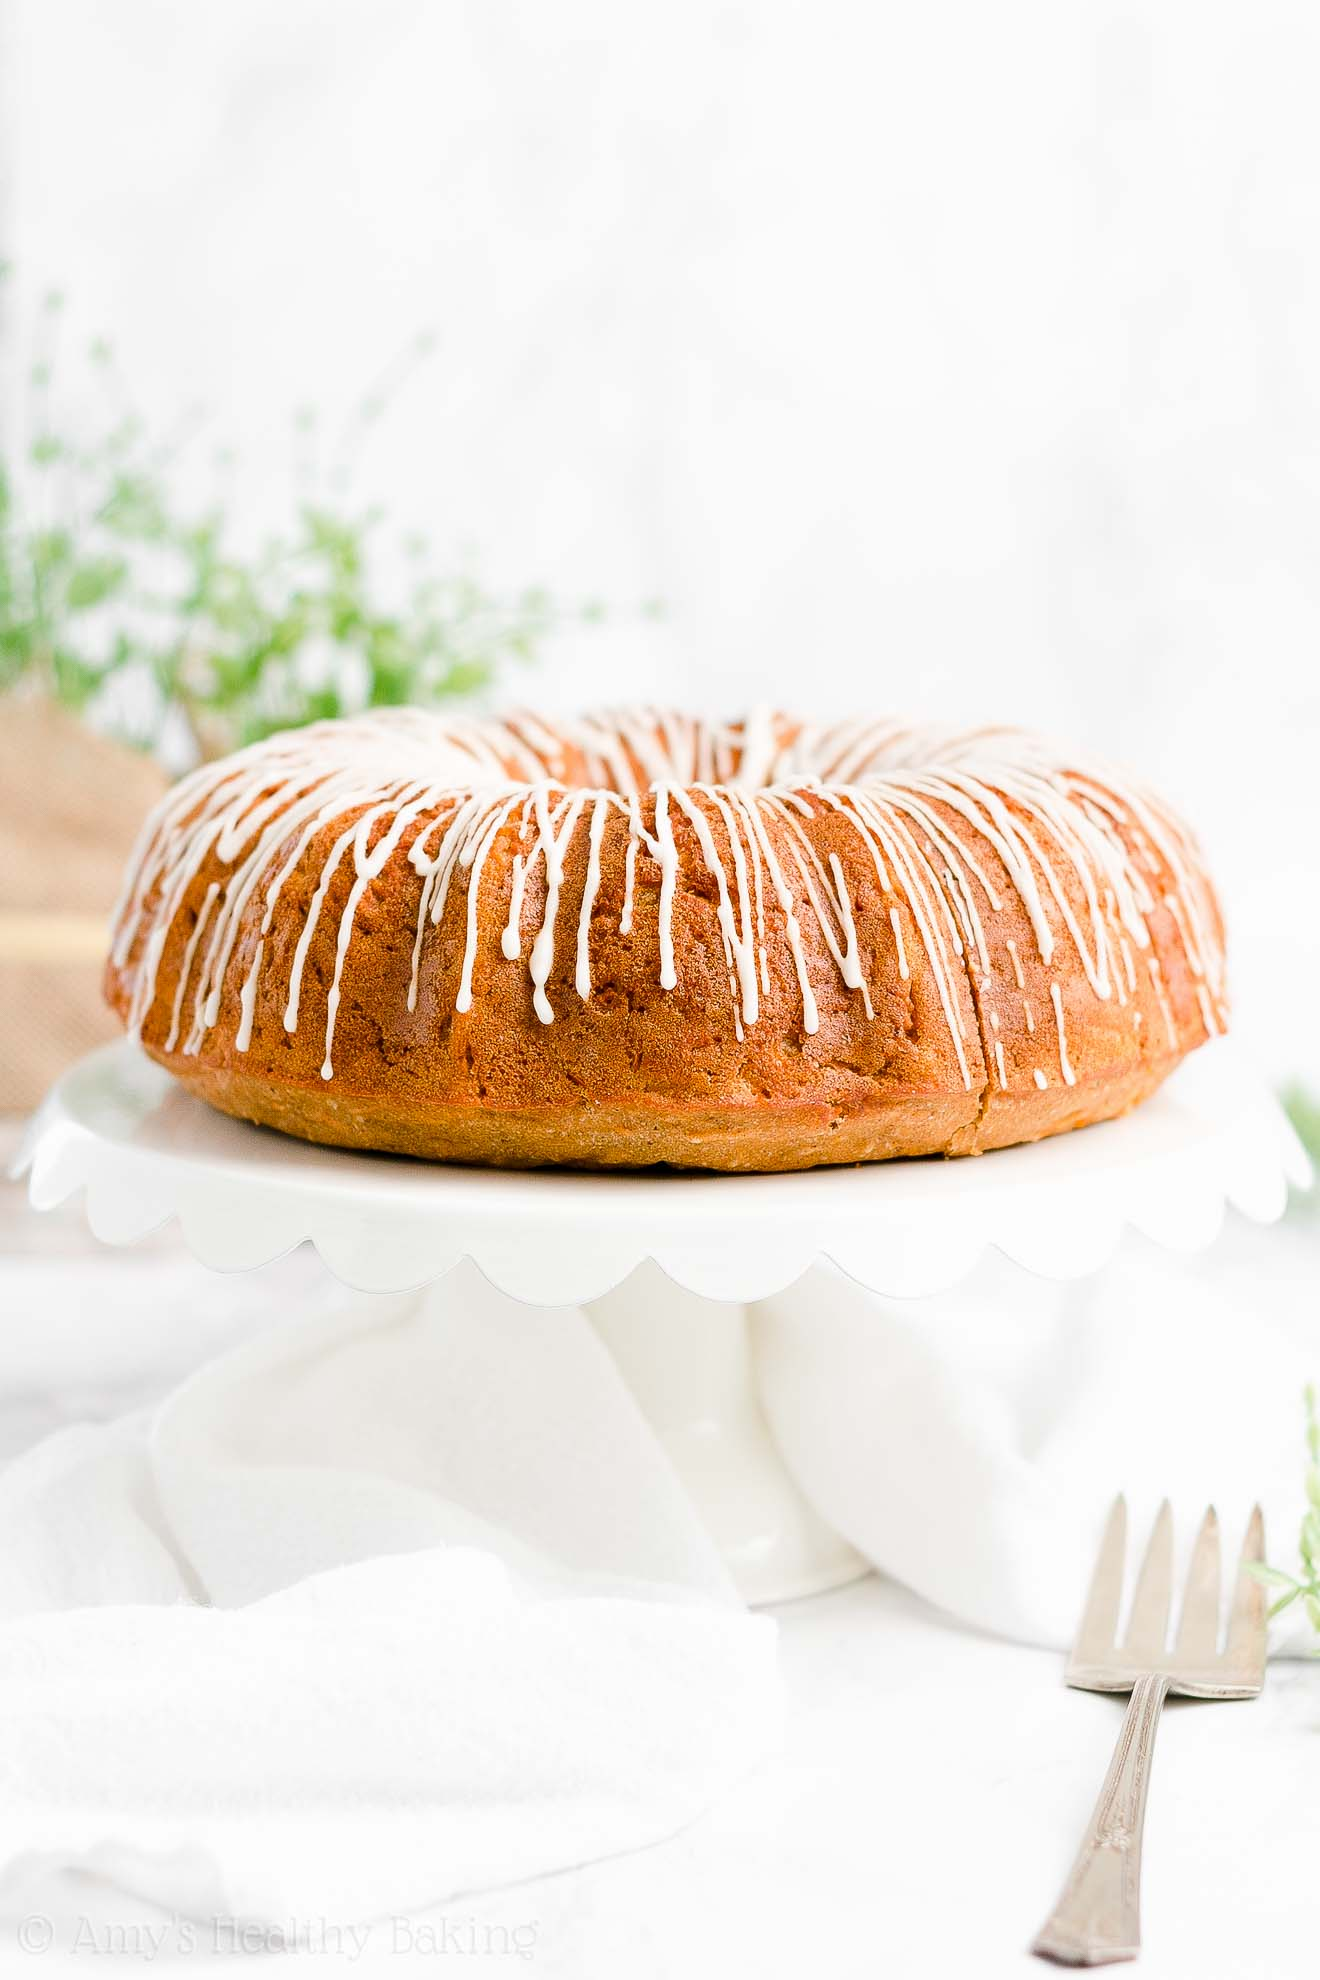 Best Easy Healthy Gluten Free Sugar Free Super Moist Carrot Bundt Cake